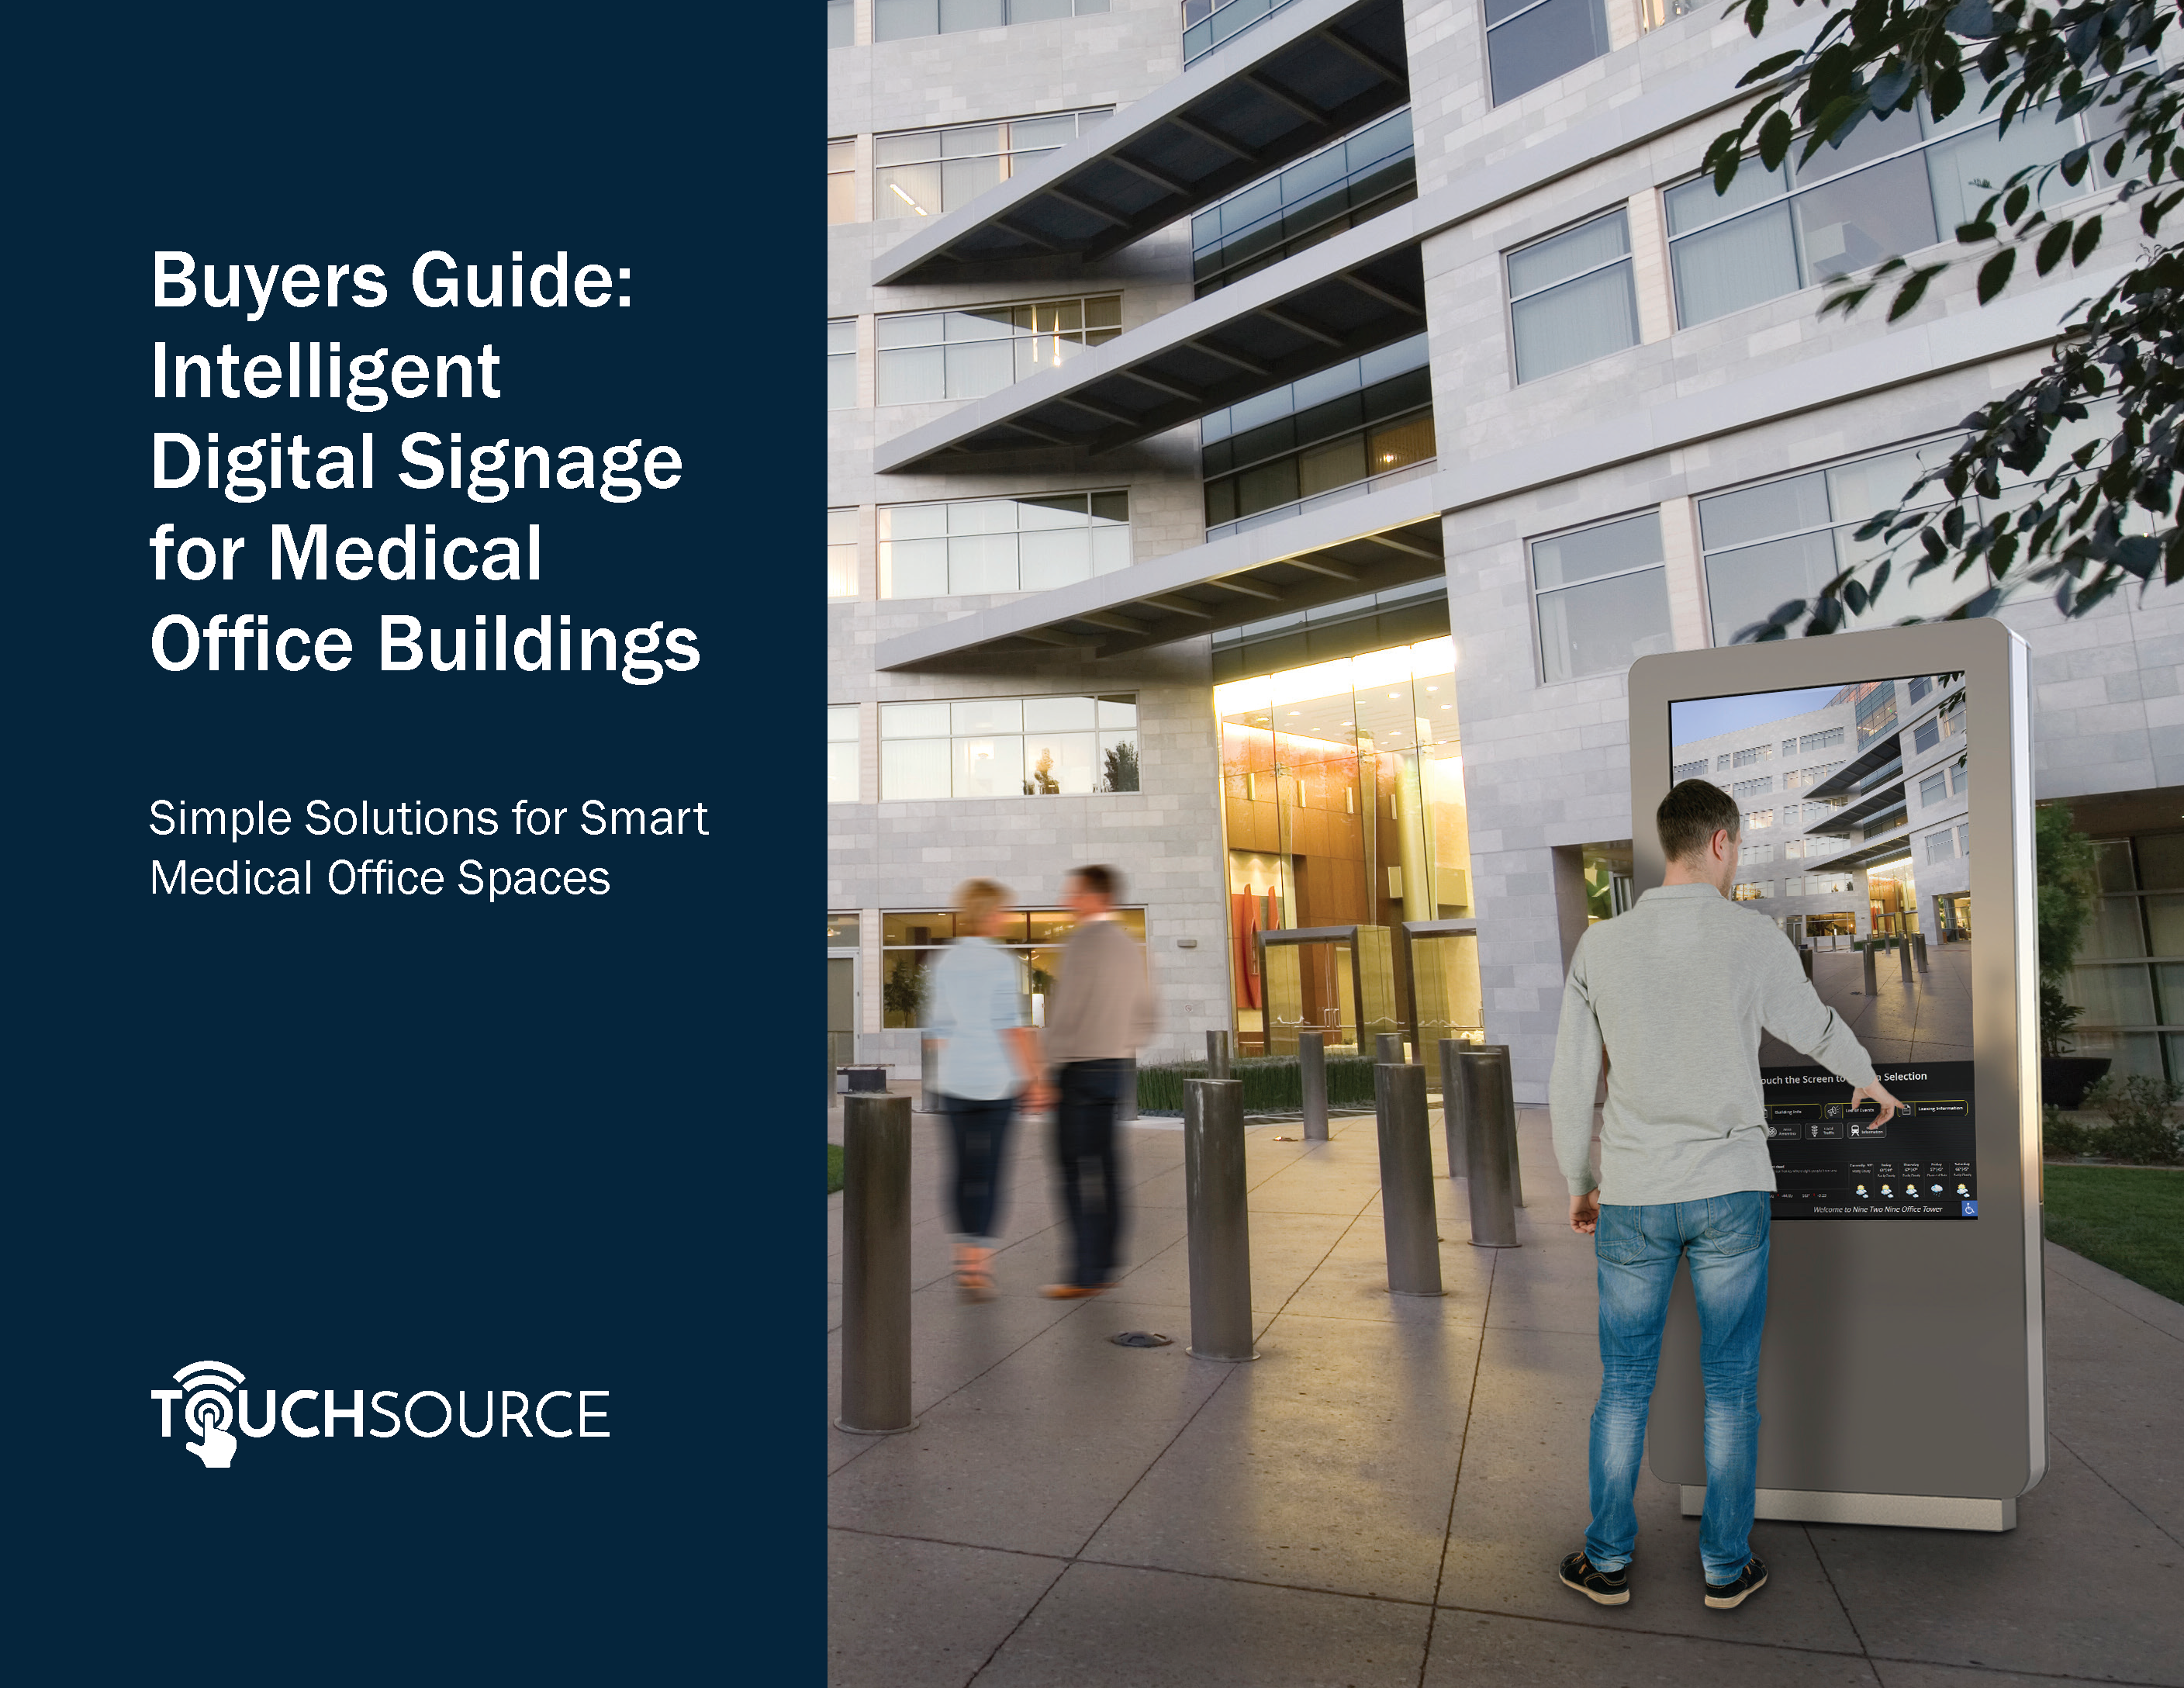 TouchSource Healthcare and Medical Buyers Guide